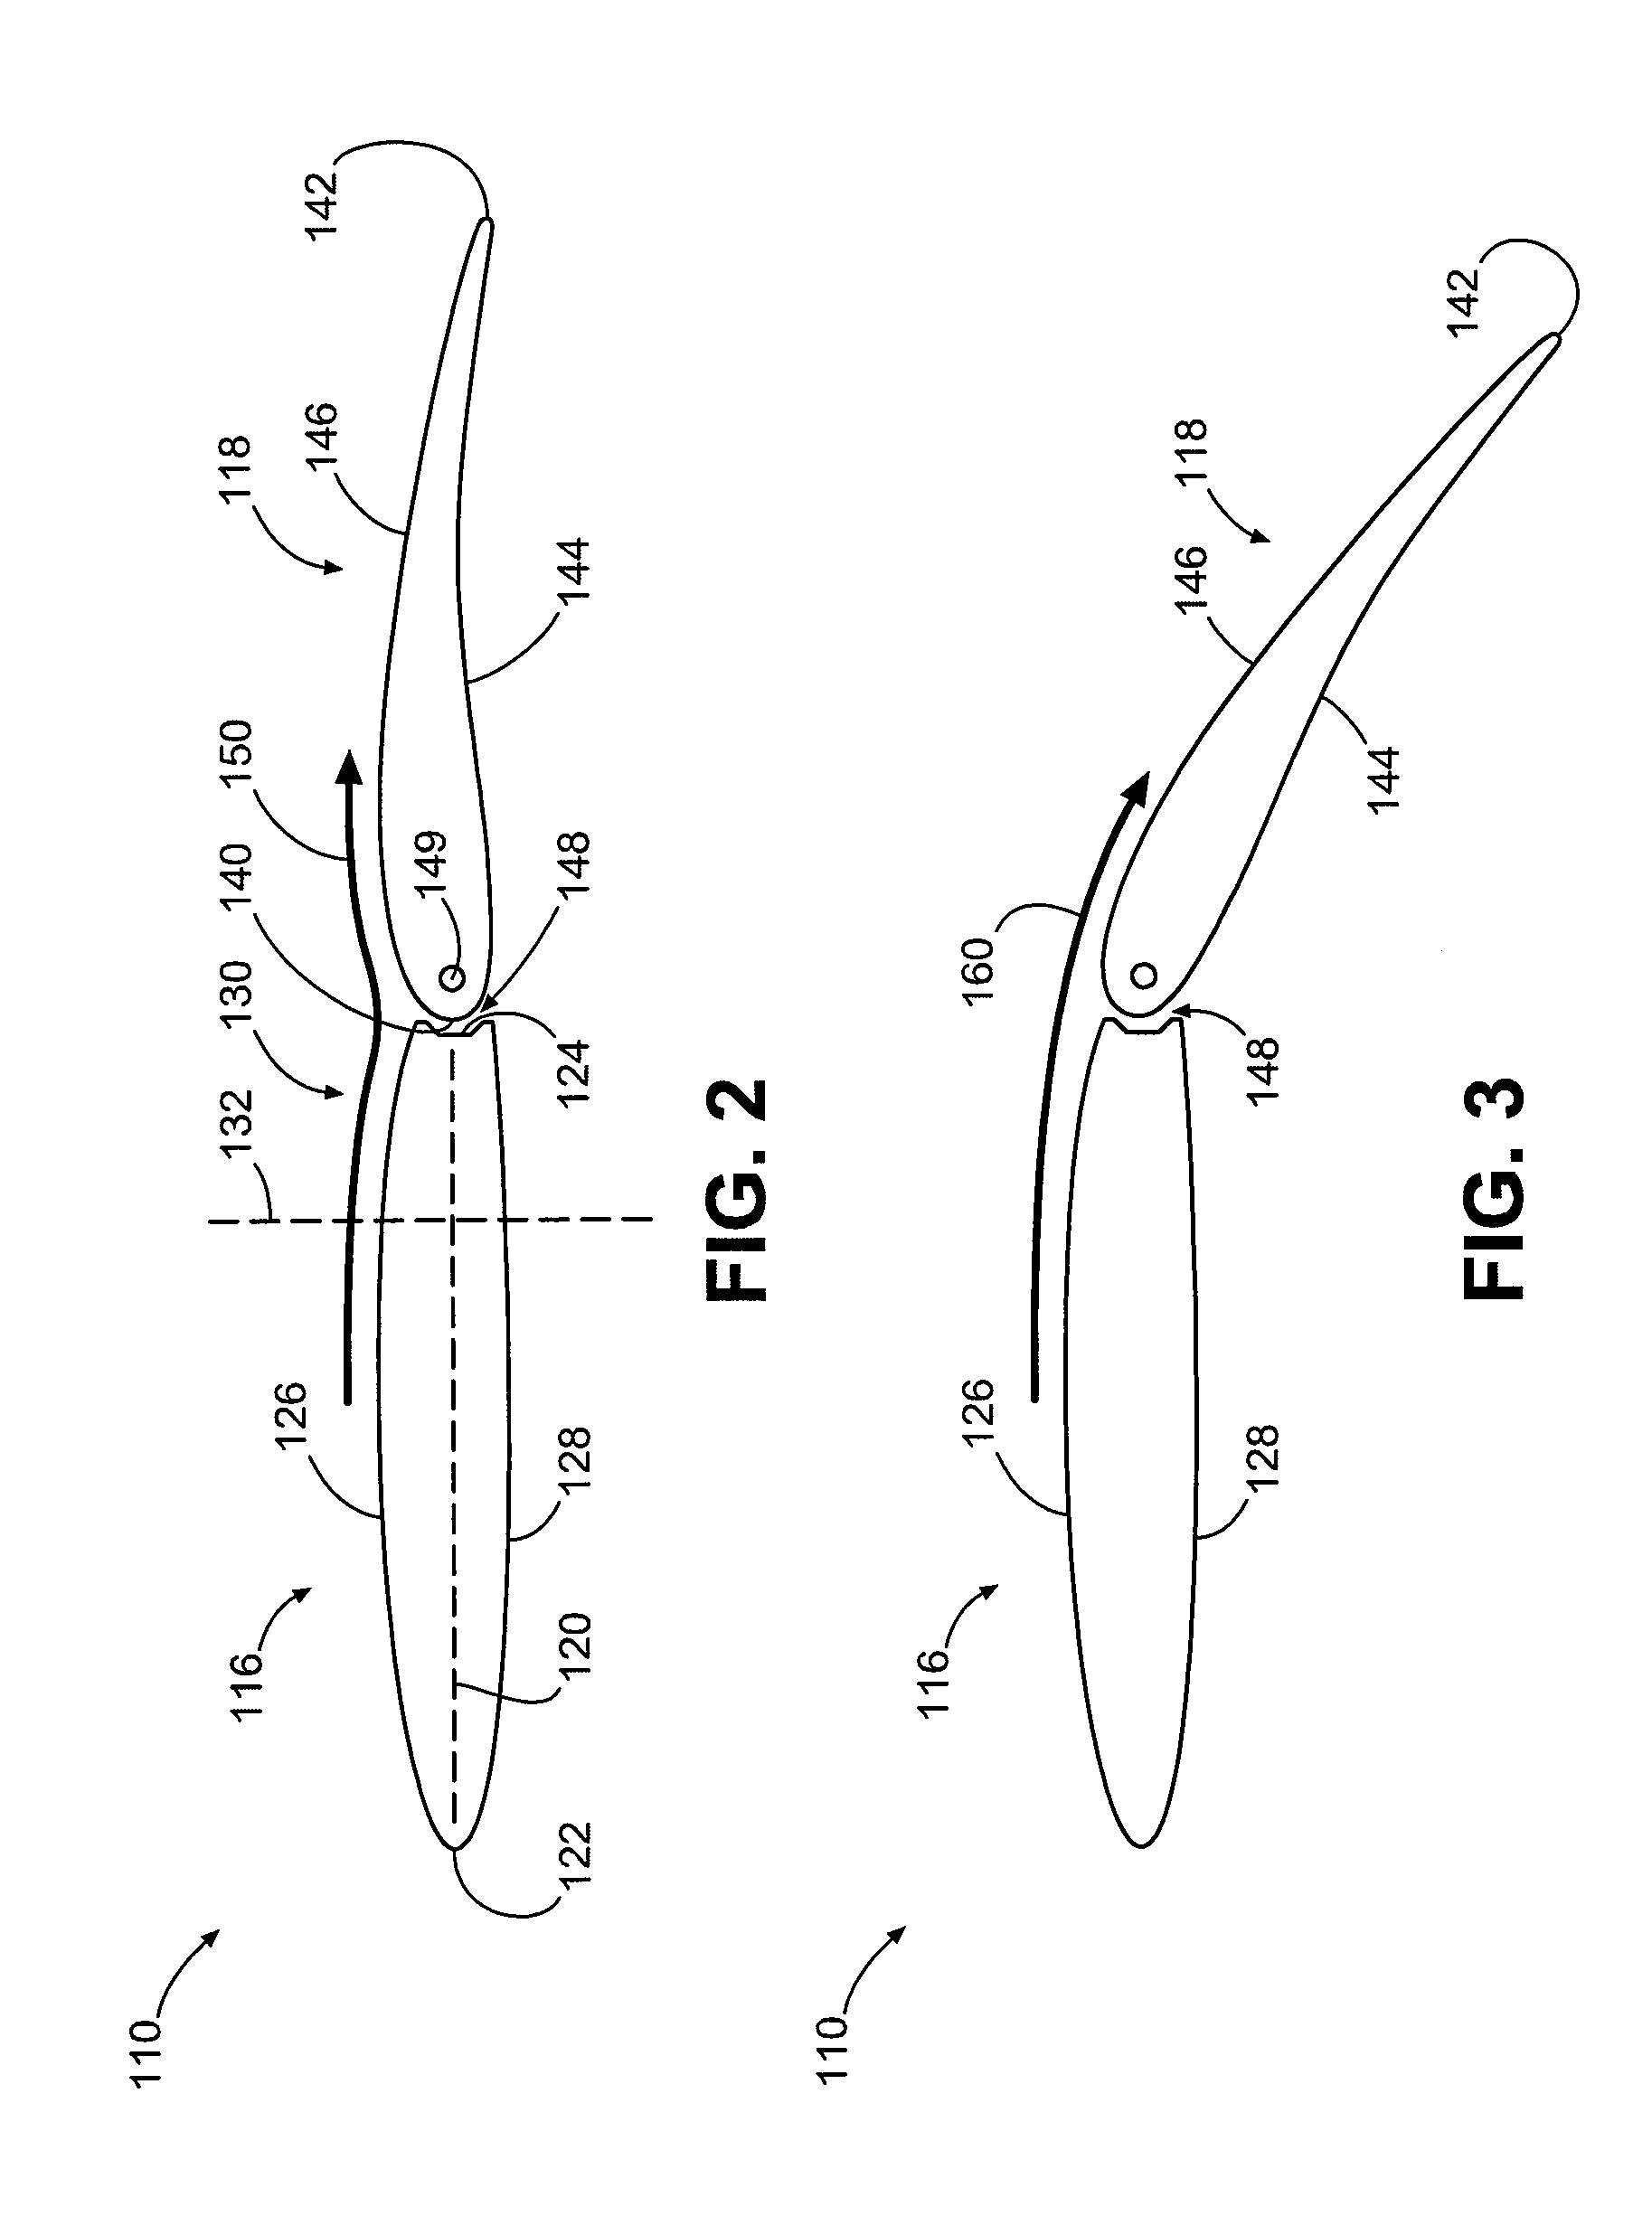 Patent US Inlet Guide Vanes and Gas Turbine Engine